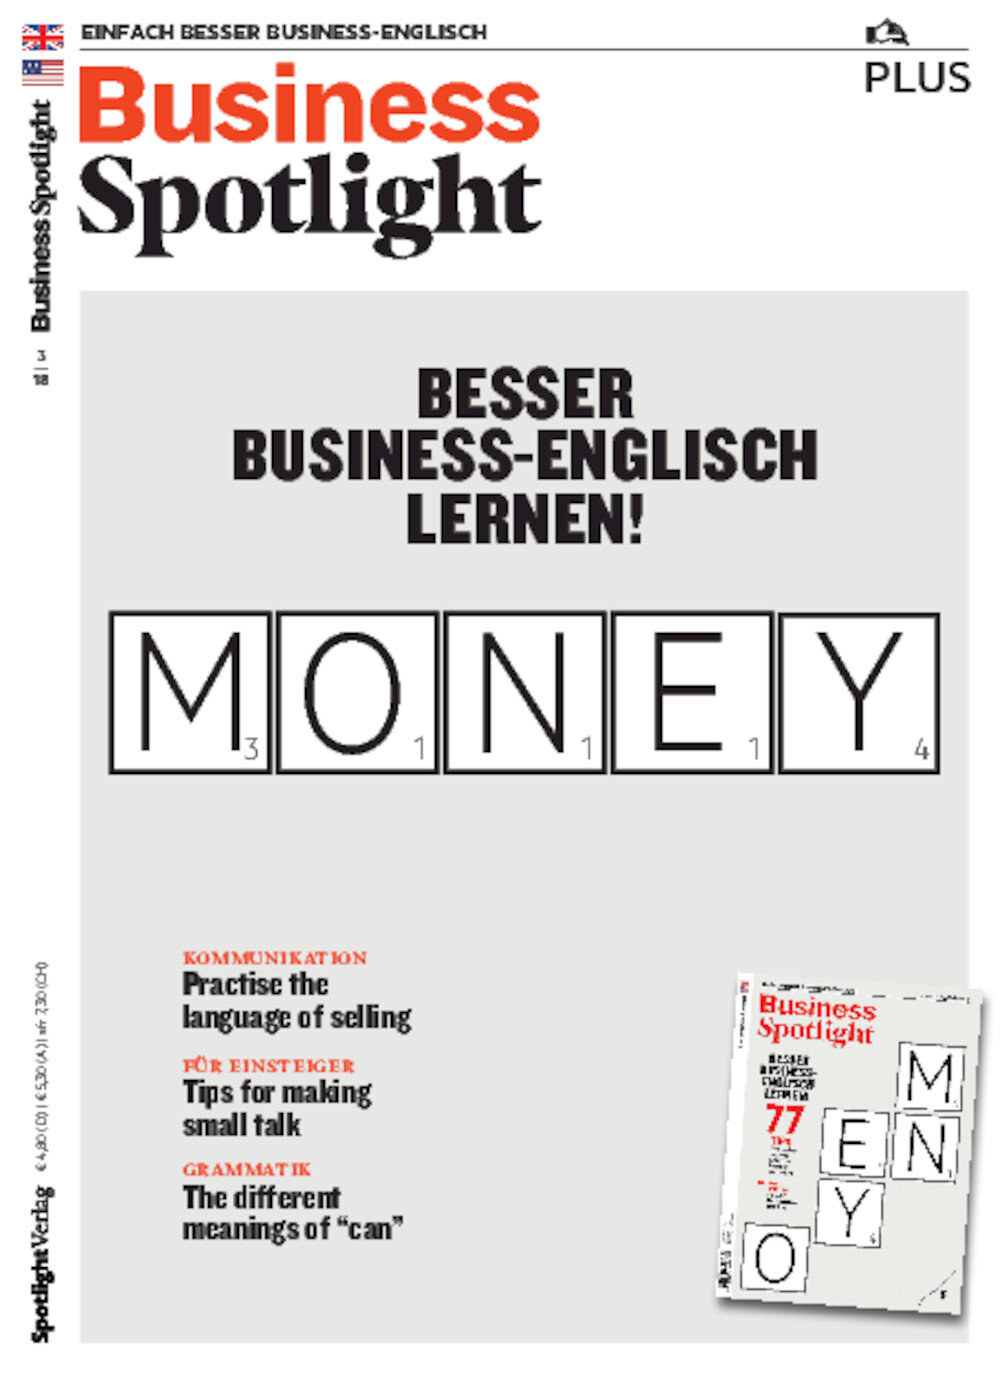 Business Spotlight PLUS ePaper 03/2018